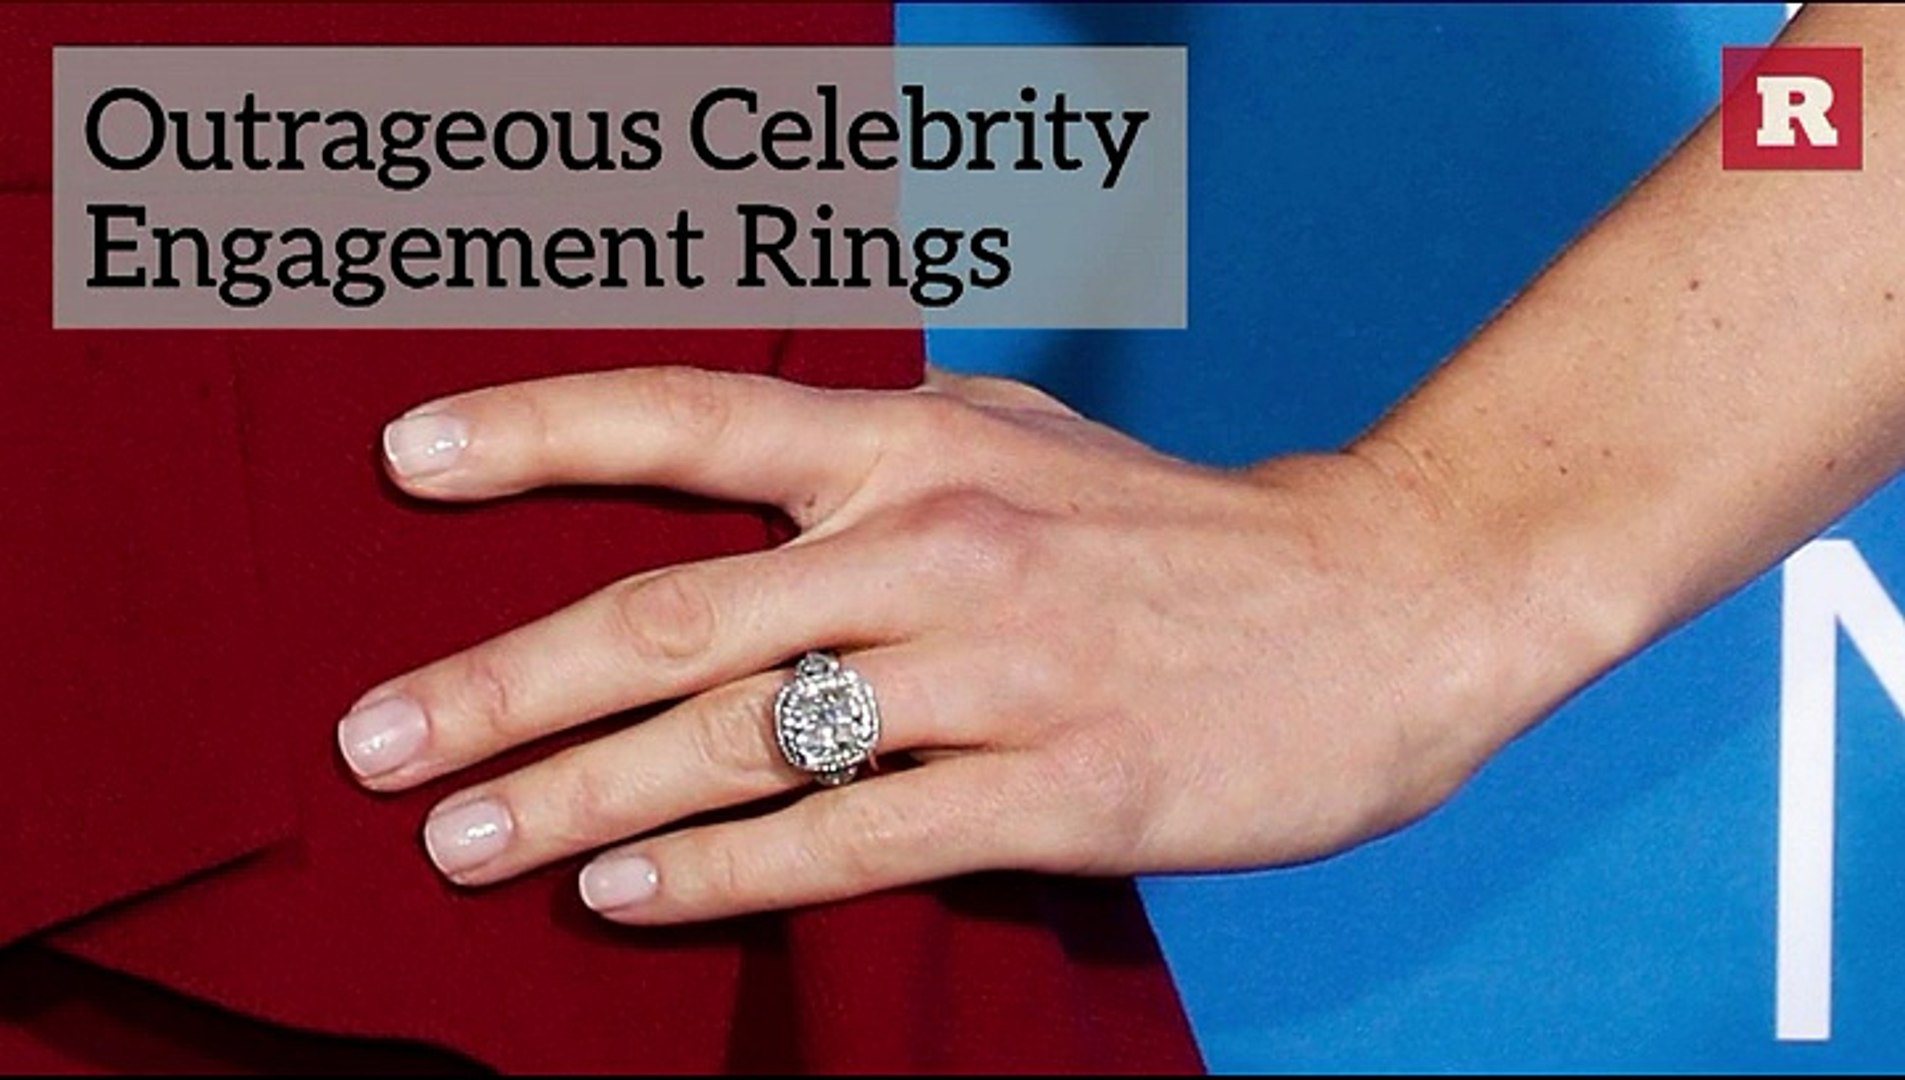 Outrageous Celebrity Engagement Rings | Rare Life